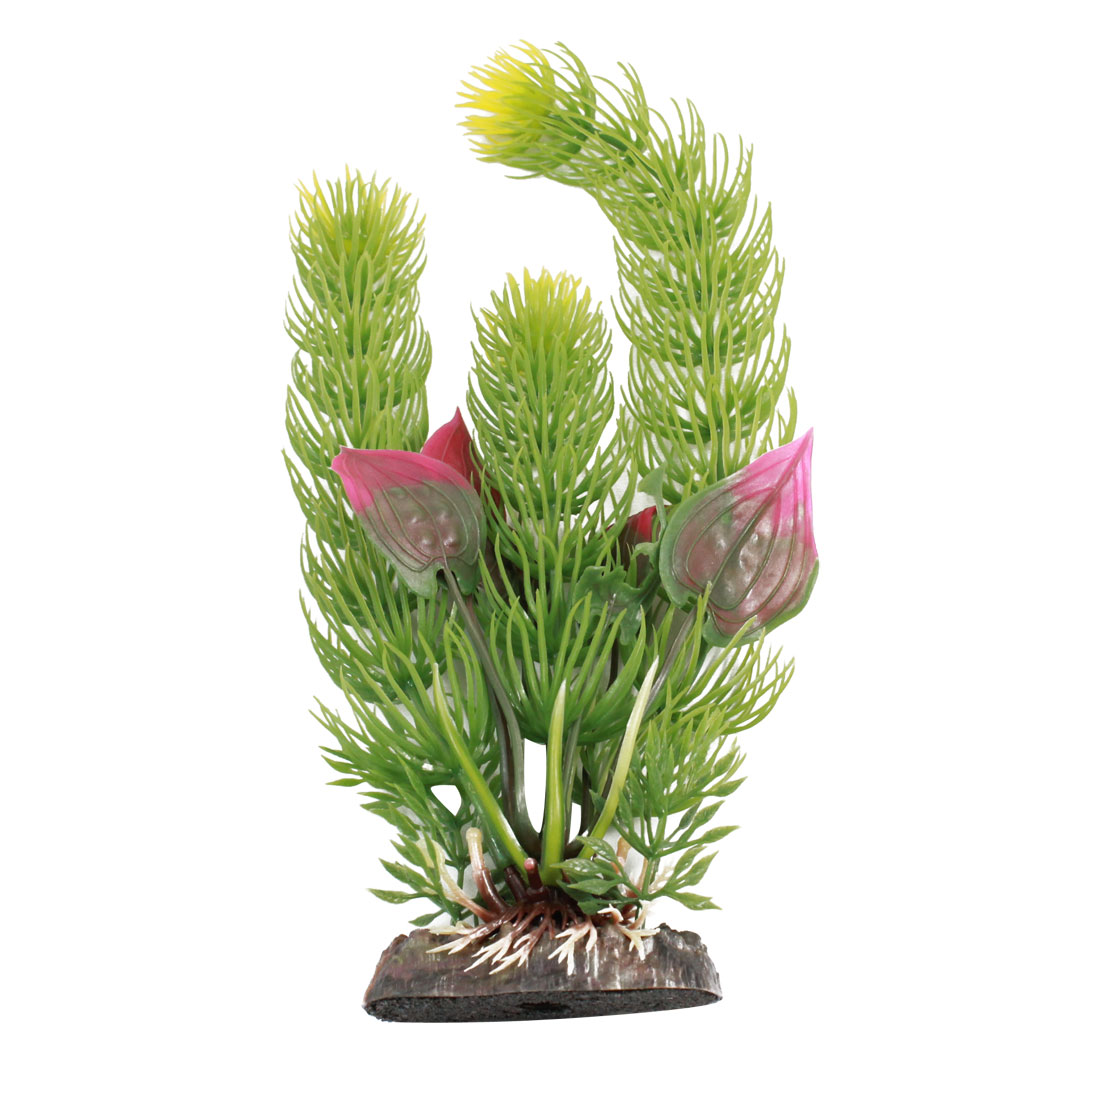 "Fish Tank Artificial Fuchsia Leaves Aquatic Grass Decor Green 8.5"" Height"